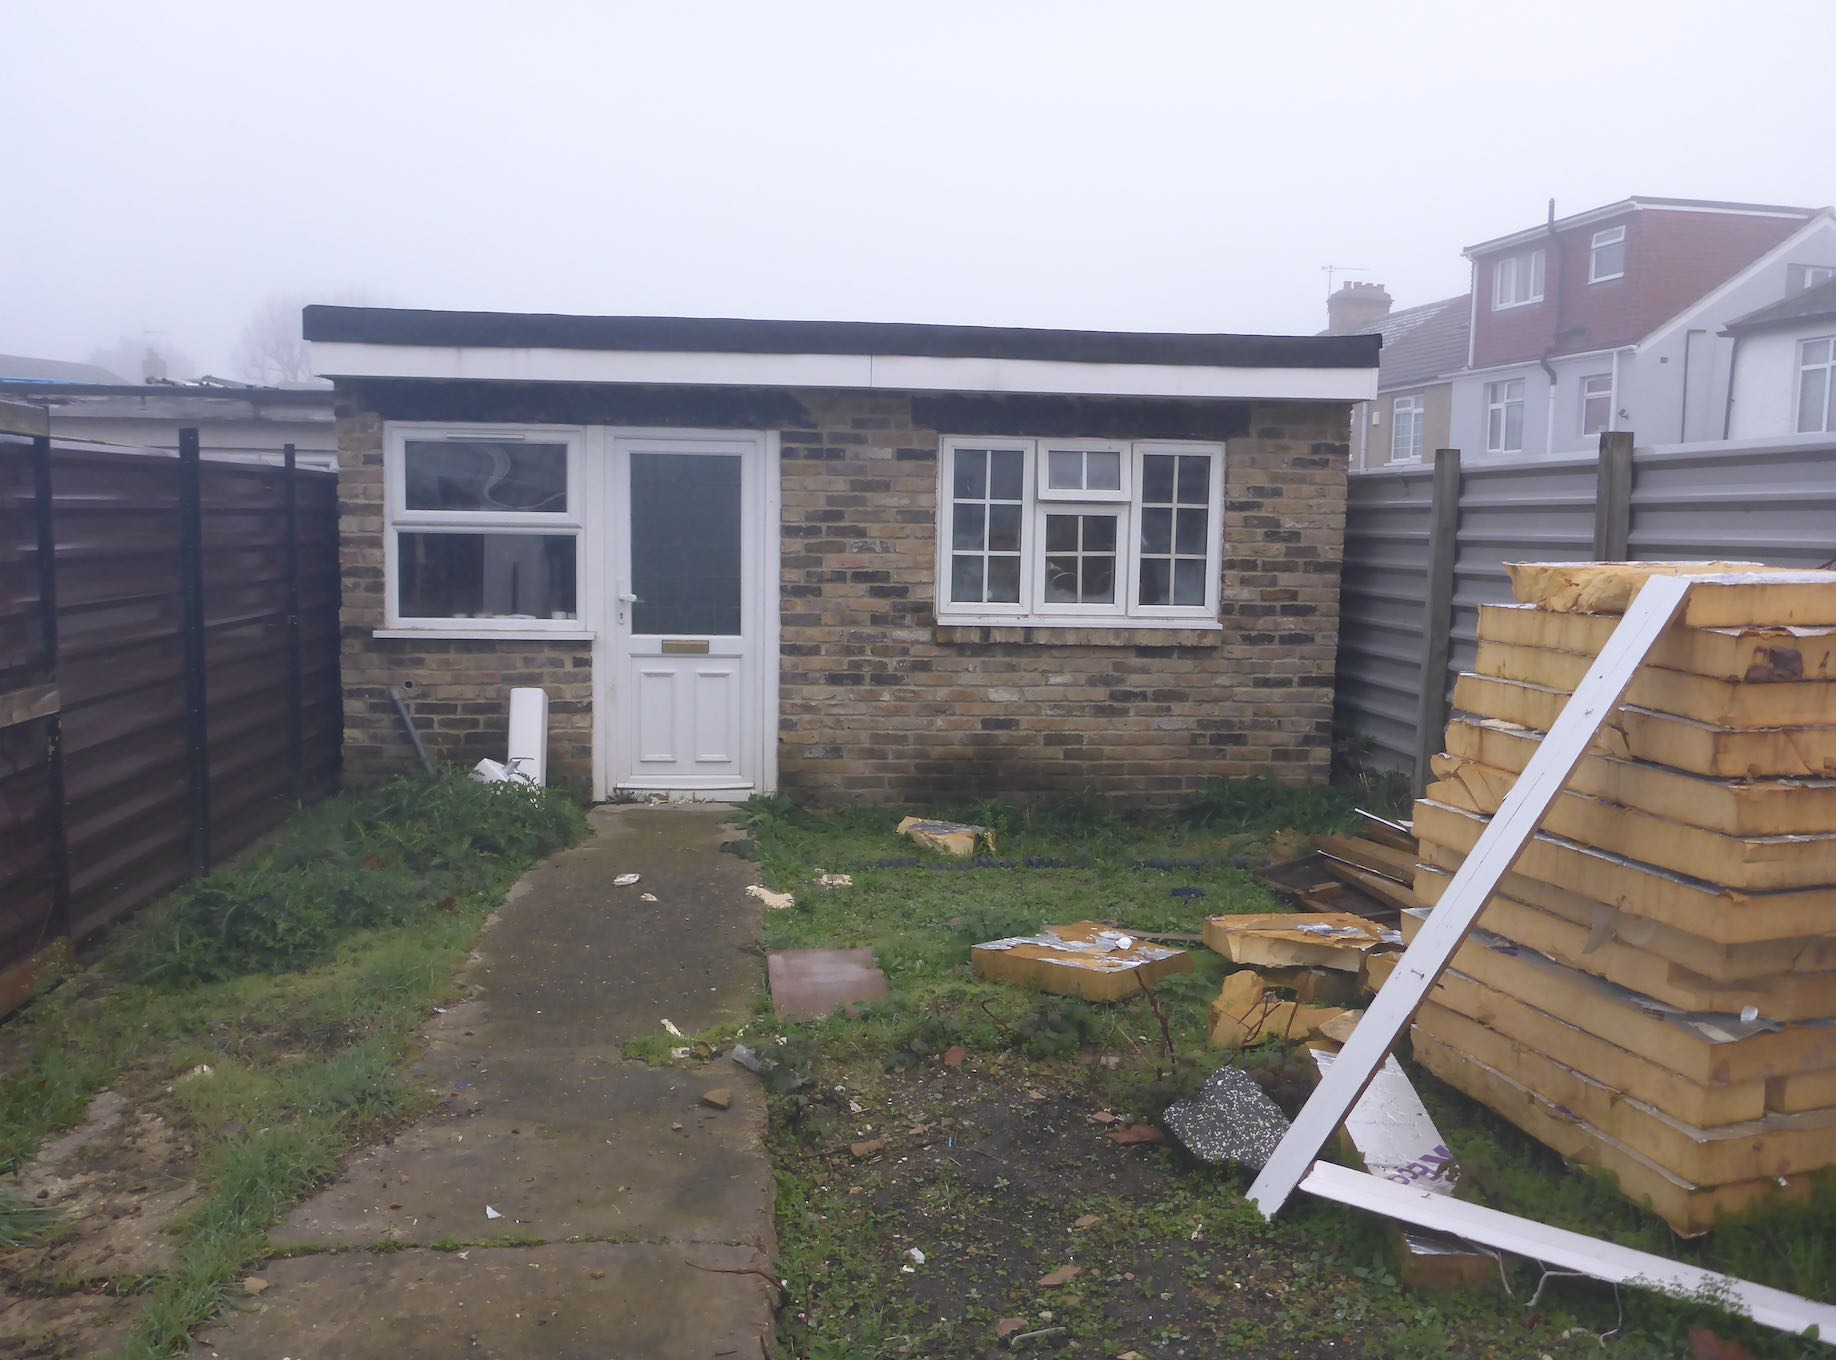 Illegal outbuilding demolished by Ealing Council 2019